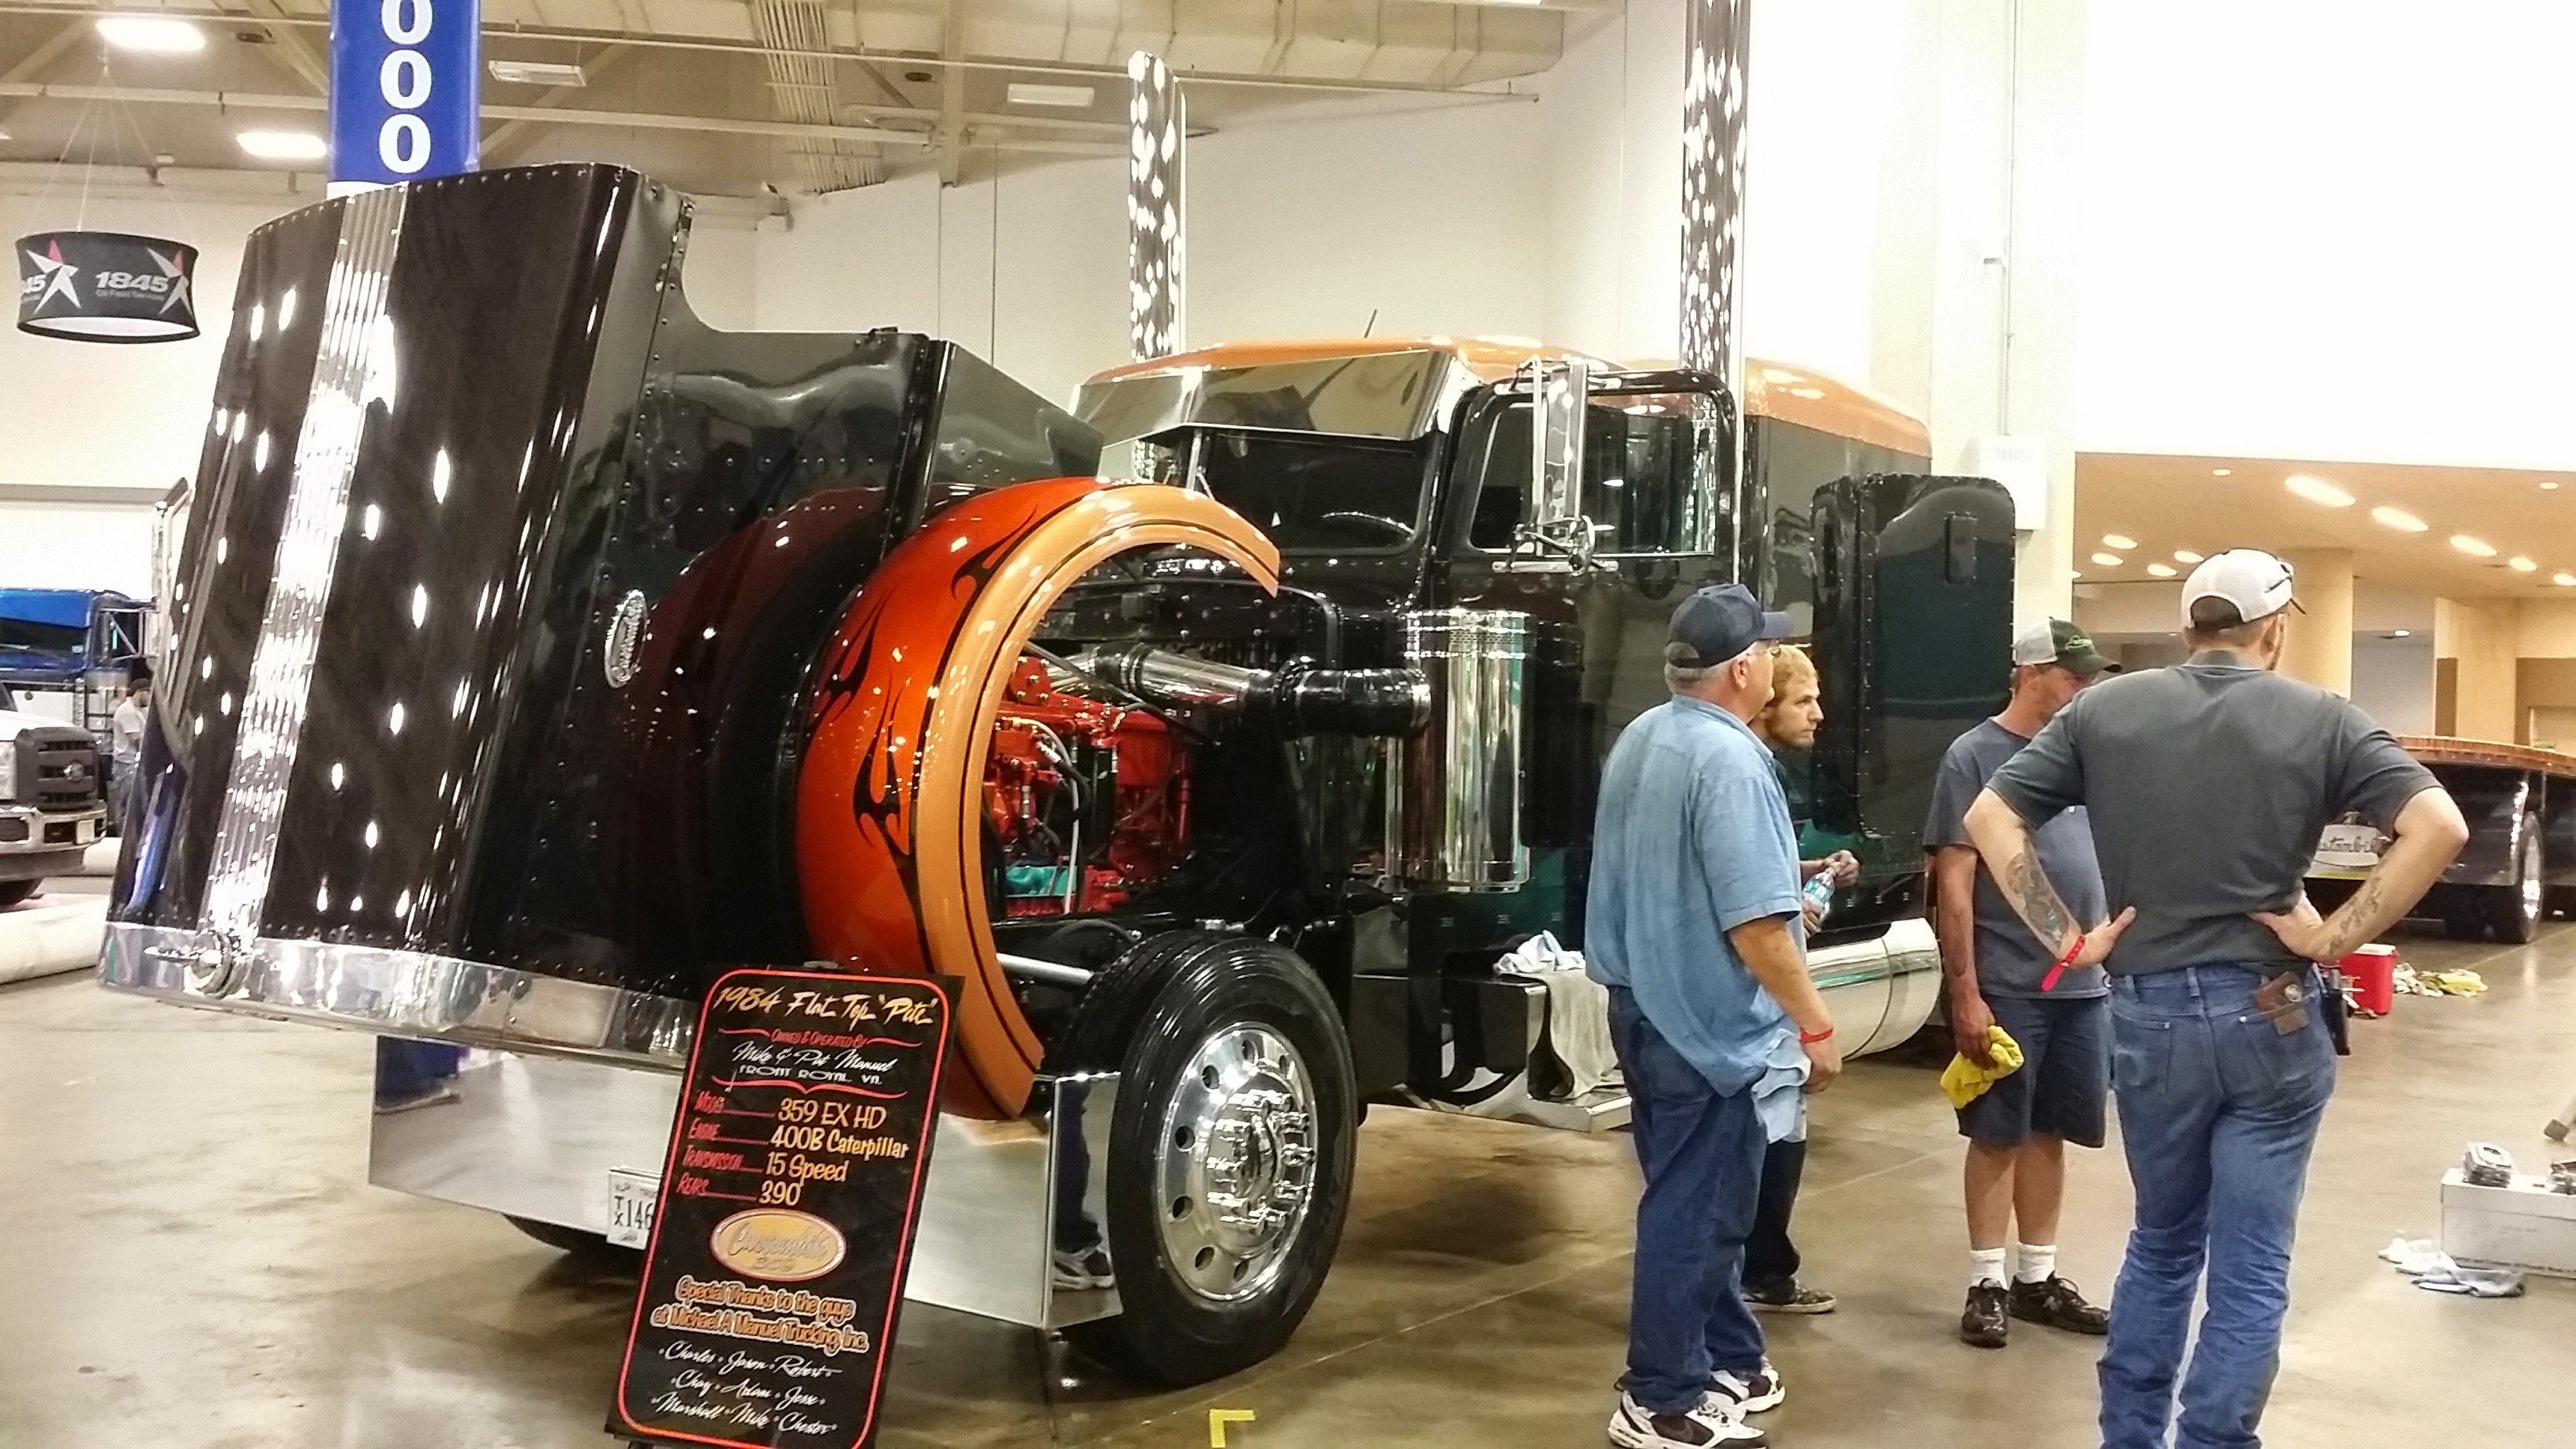 Mike Manuel's 1984 Peterbilt 359, competing in the Working Combo category in the Pride & Polish National Championship.